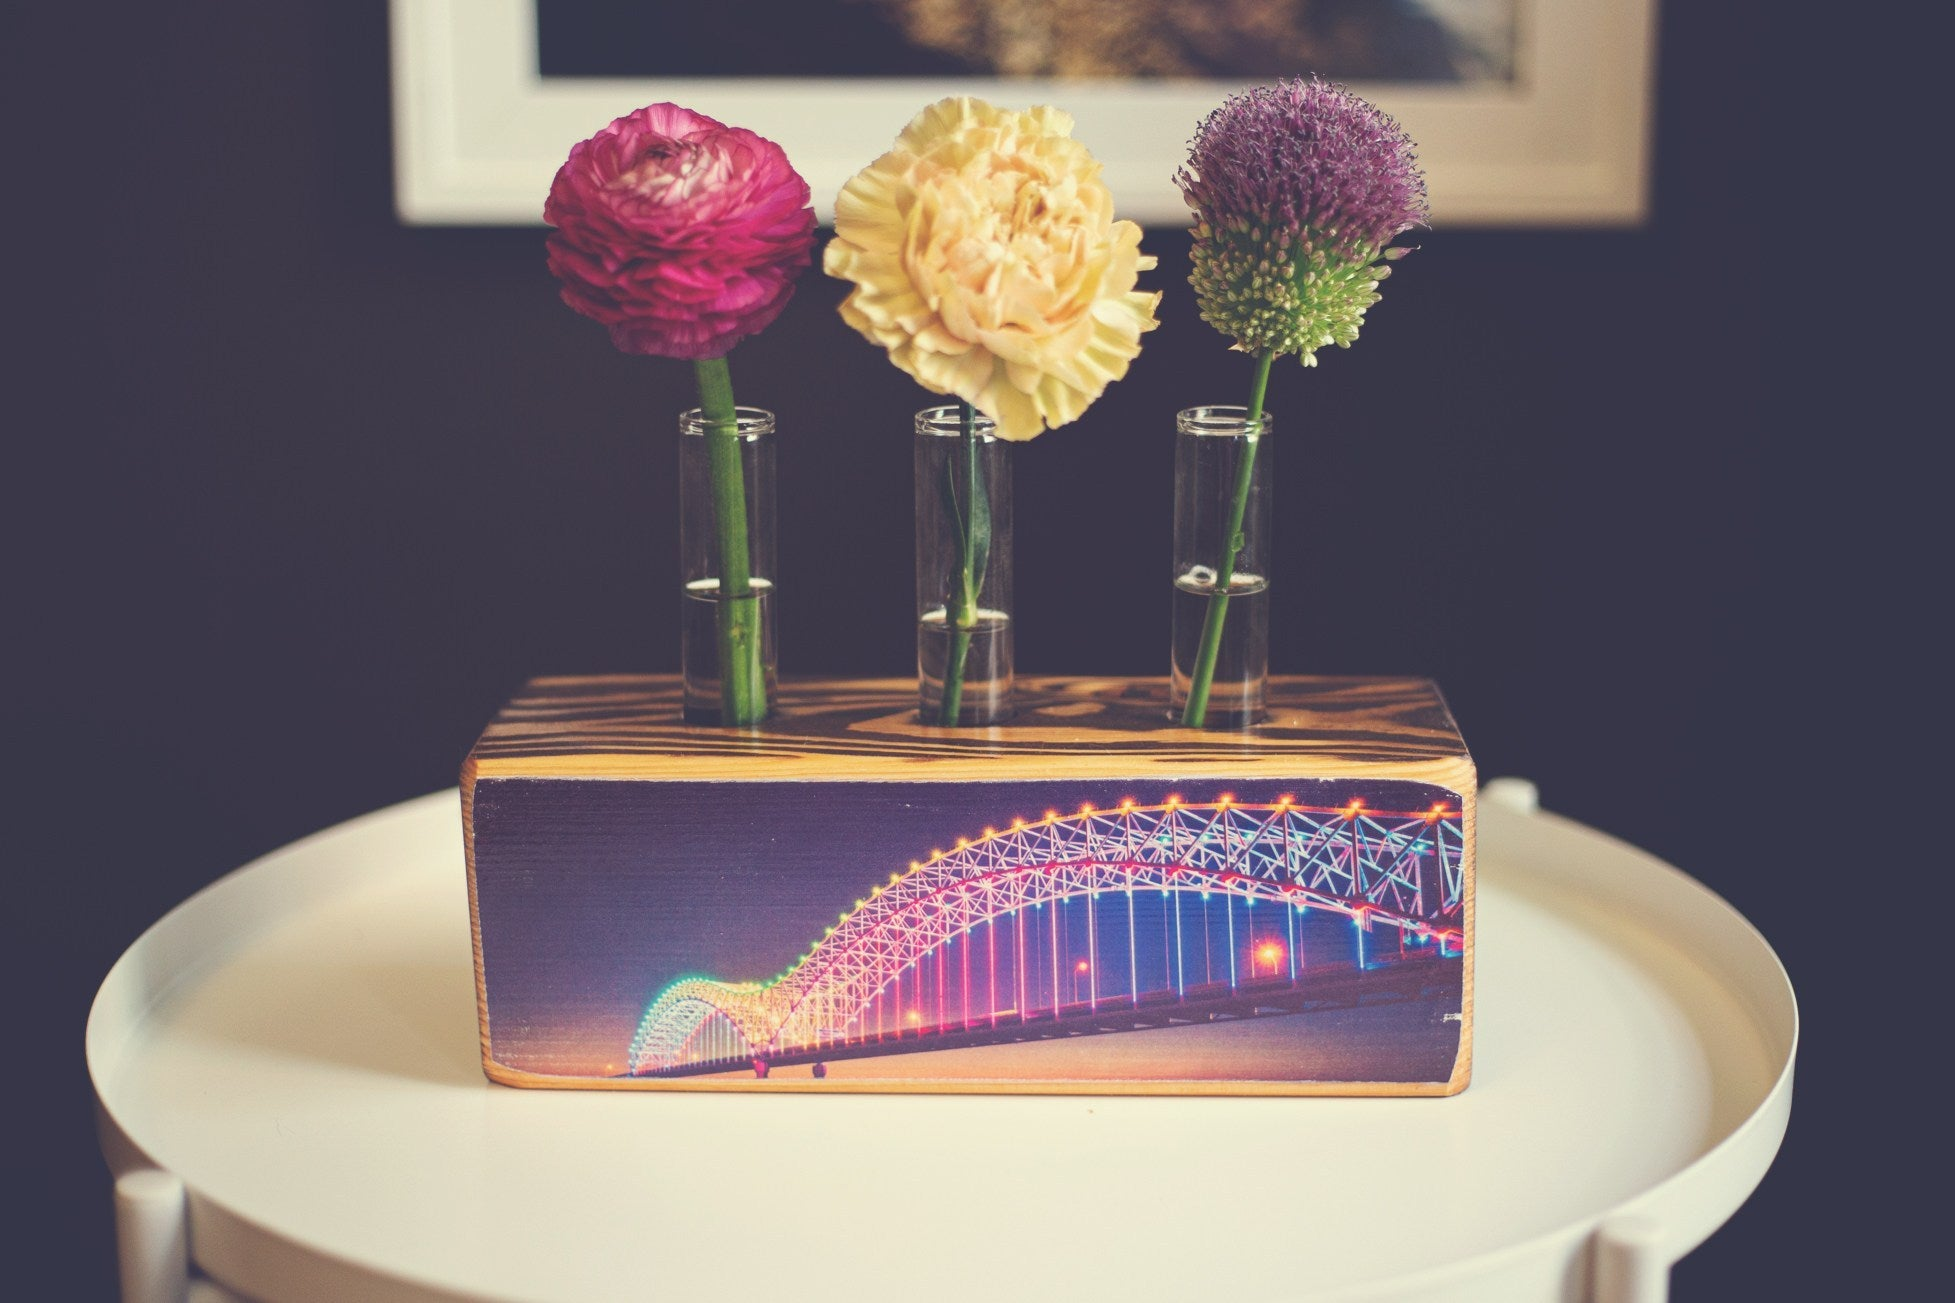 ARCHd wood bud vase memphis bridge rainbow